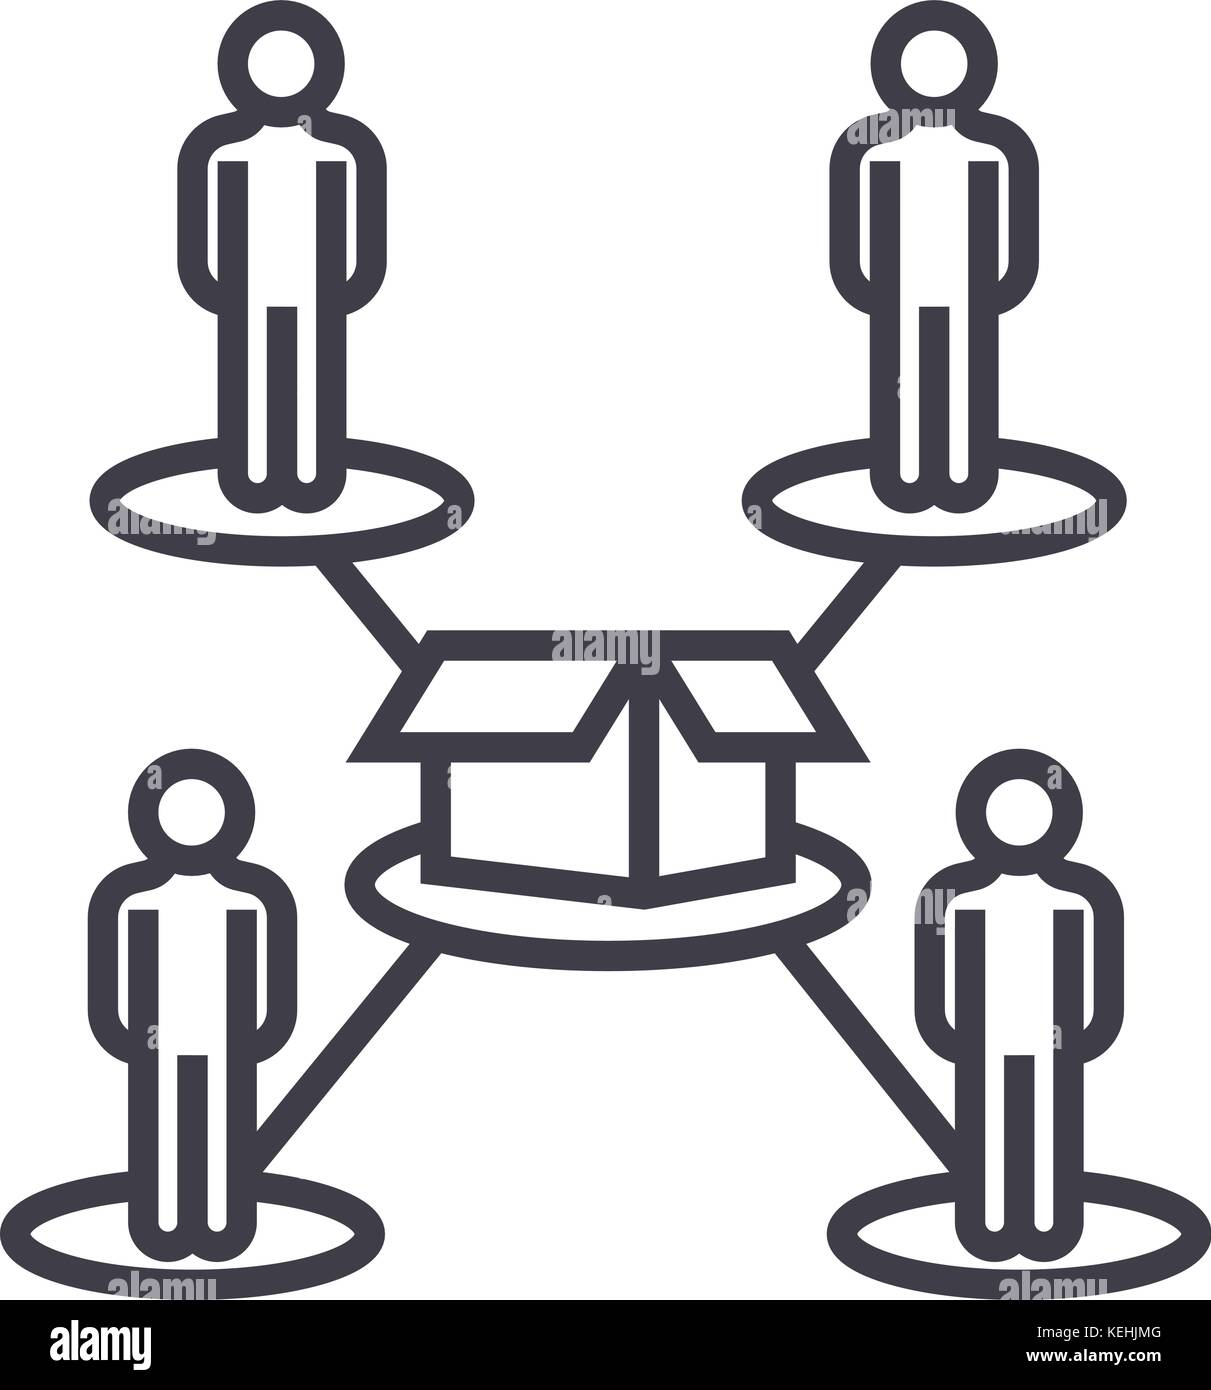 crowdfunding people network vector line icon sign illustration on